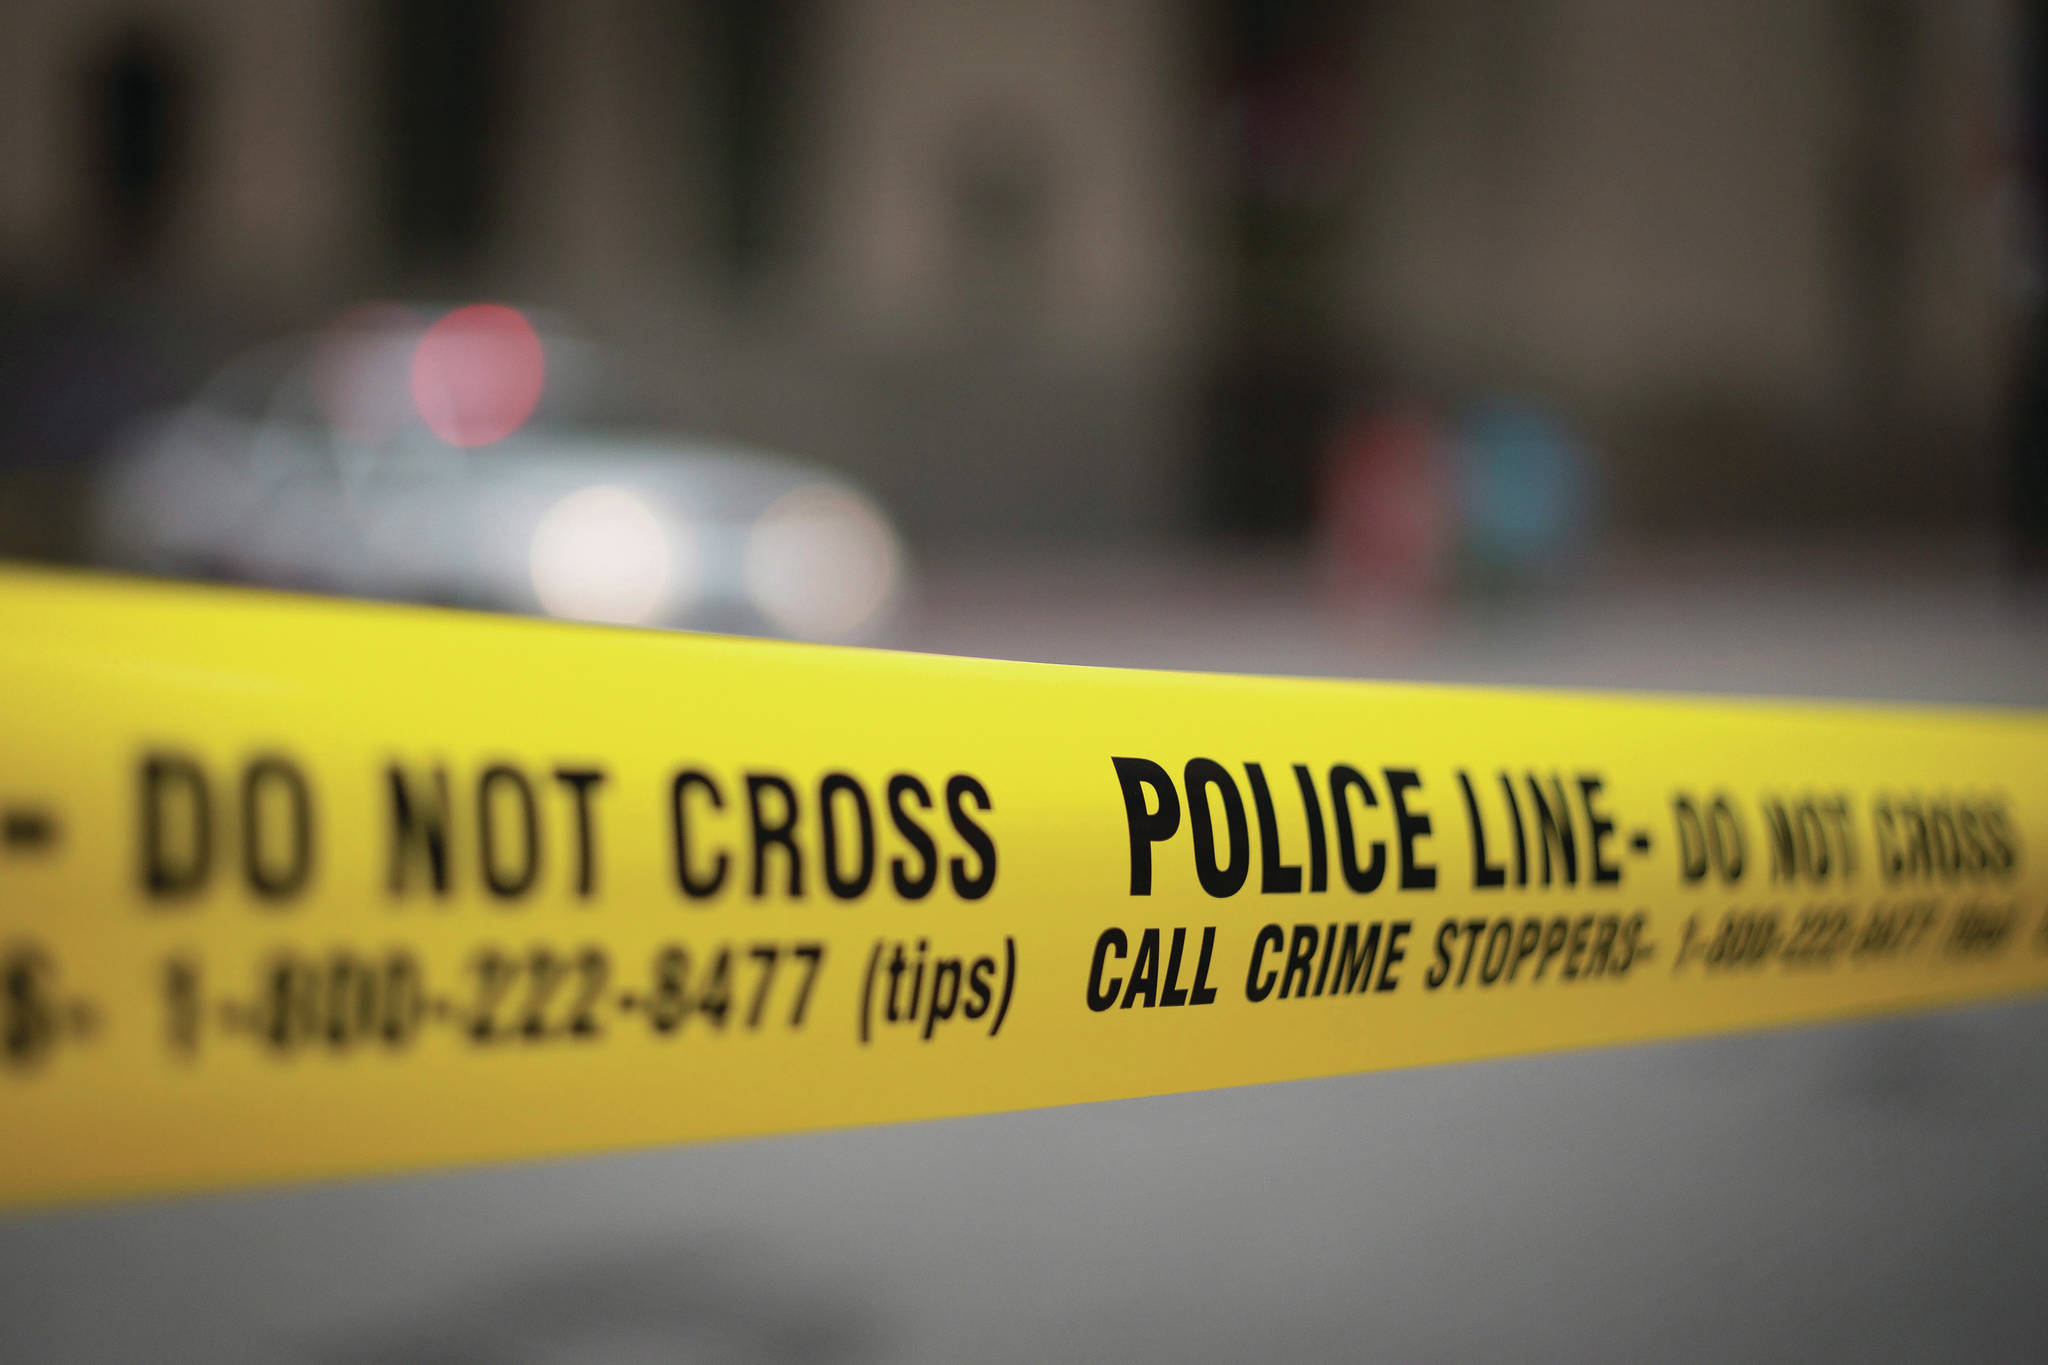 Police tape is shown in Toronto Tuesday, May 2, 2017. Statistics Canada says the country's crime rate ticked up again in 2018, for a fourth year in a row, though it was still lower than it was a decade ago. THE CANADIAN PRESS/Graeme Roy